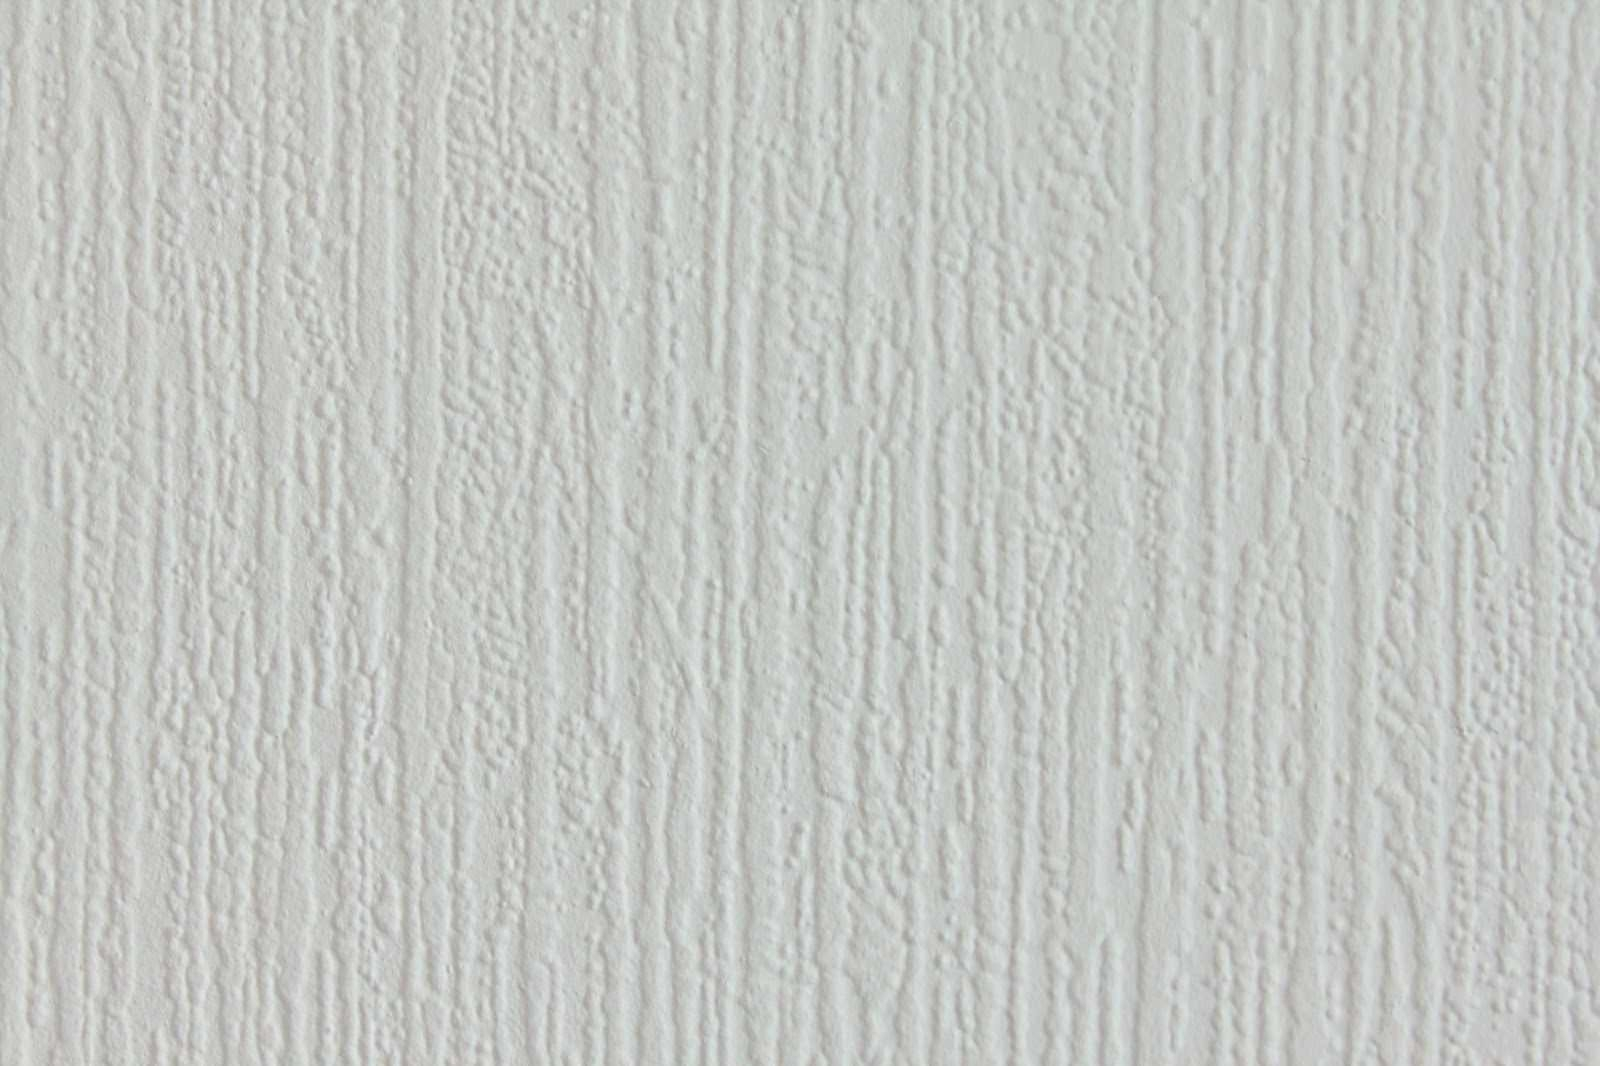 Wall Finish Trends : White textures design trends